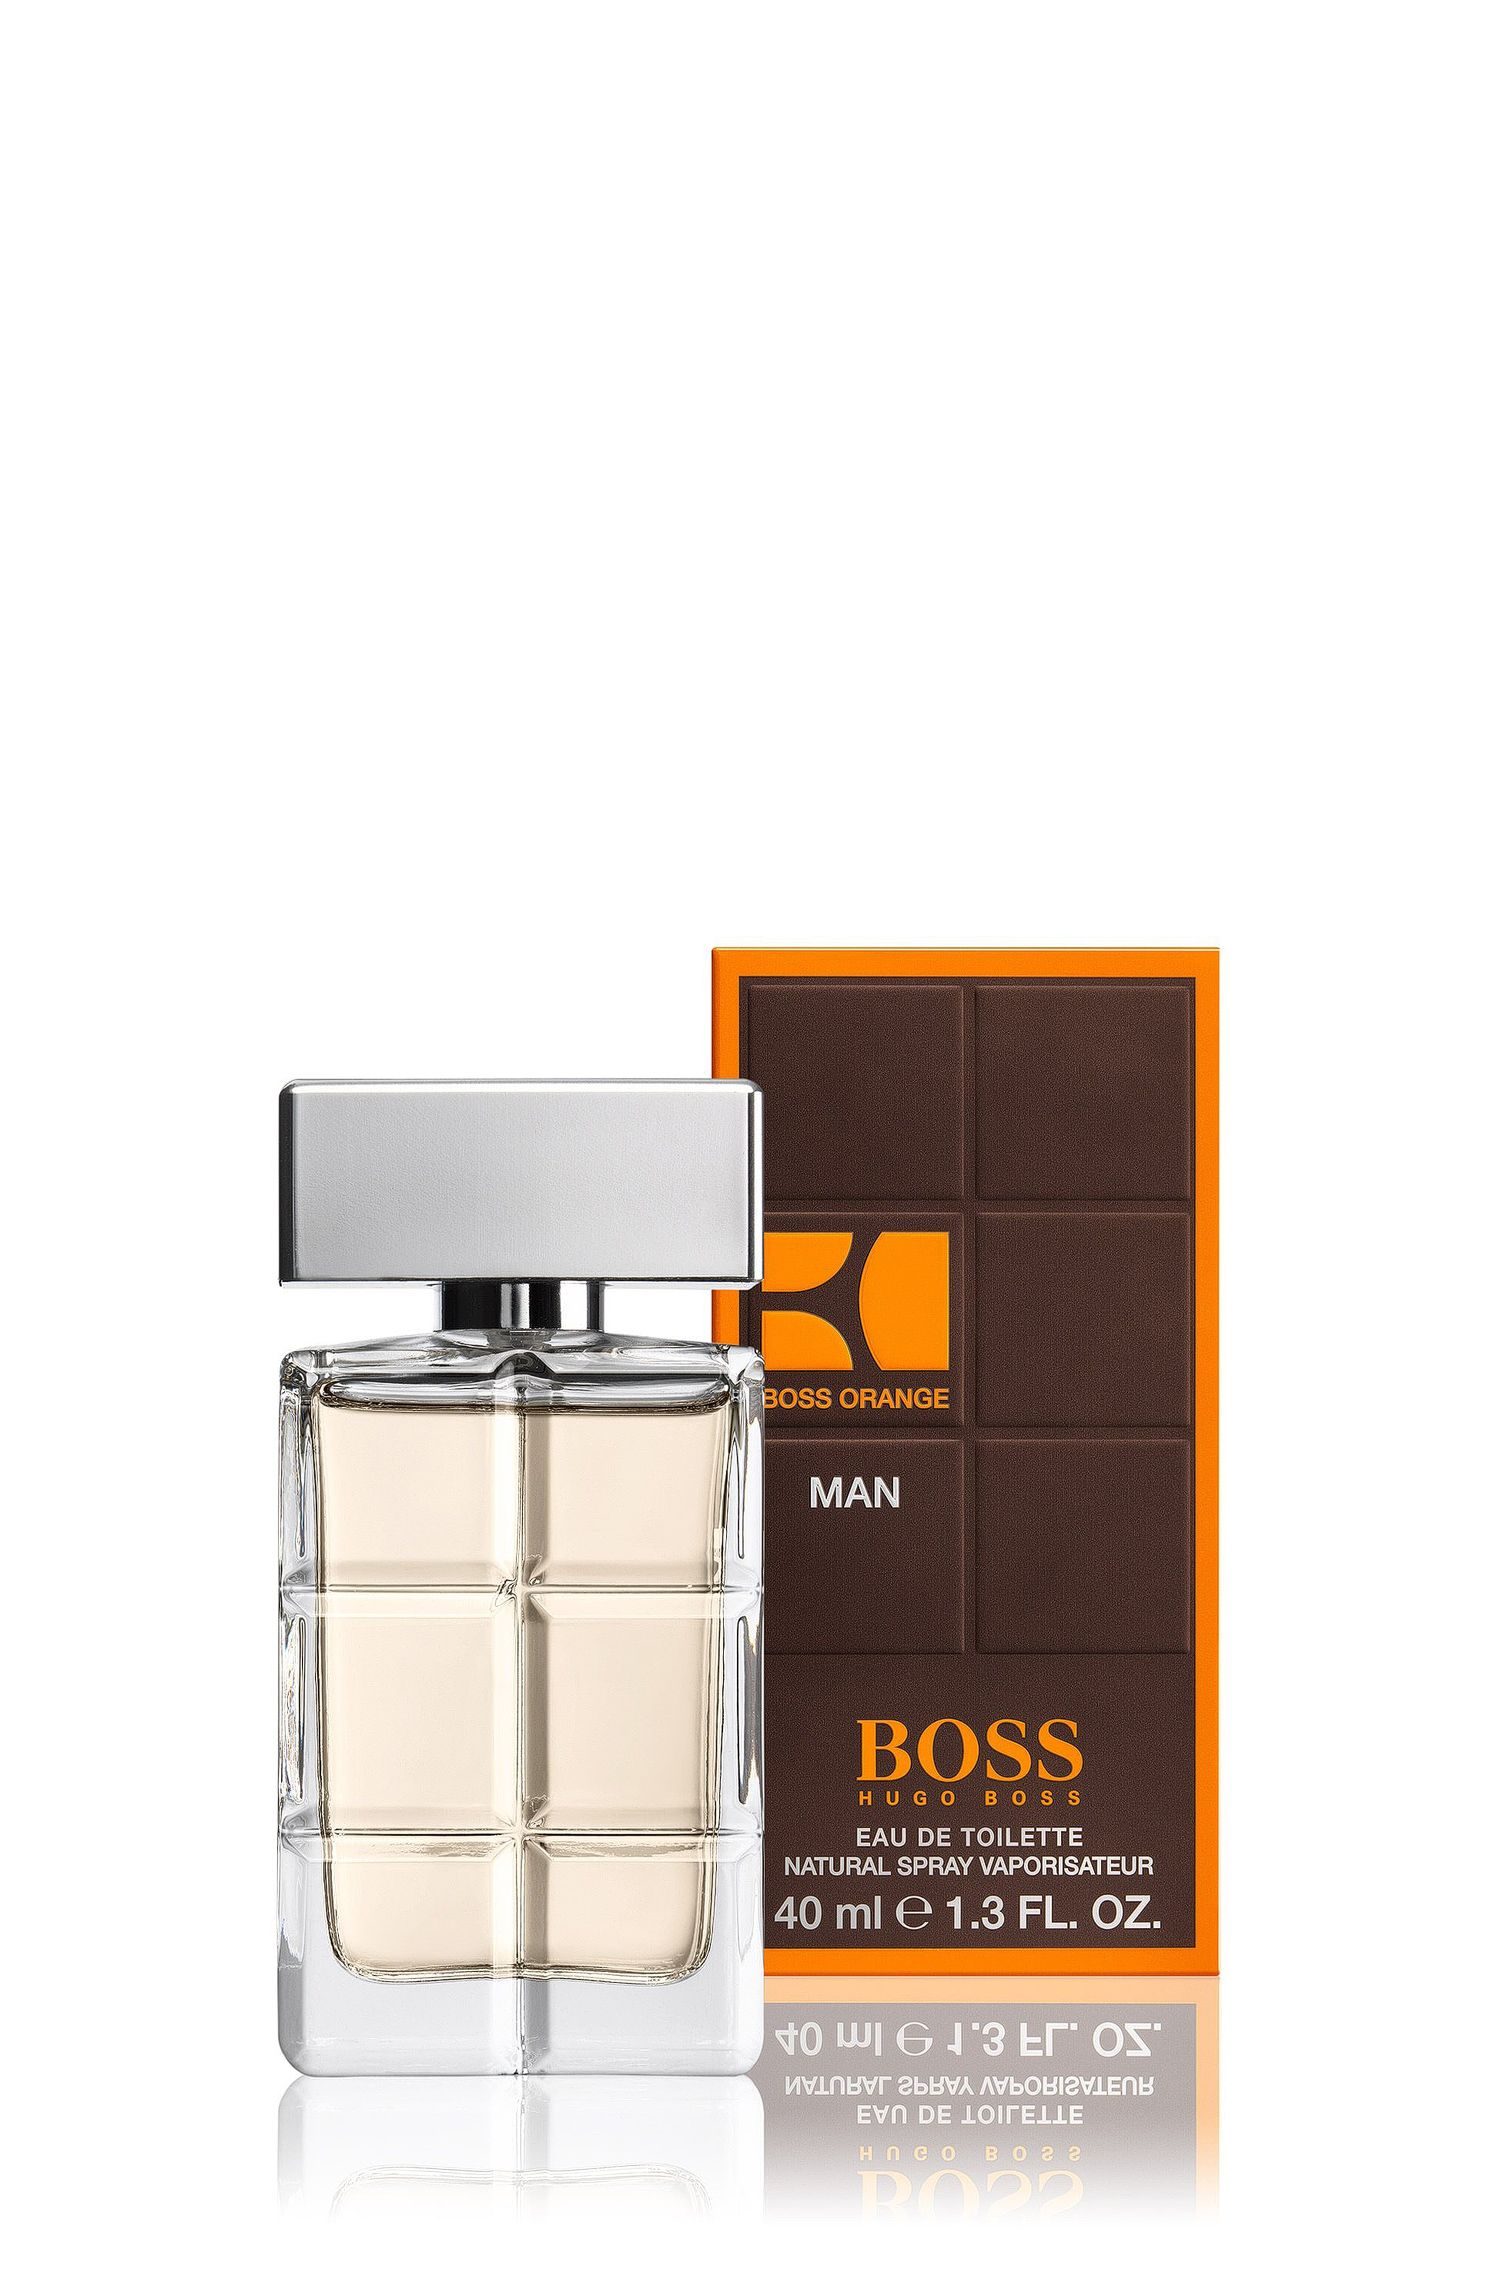 BOSS Orange Man eau de toilette 40 ml